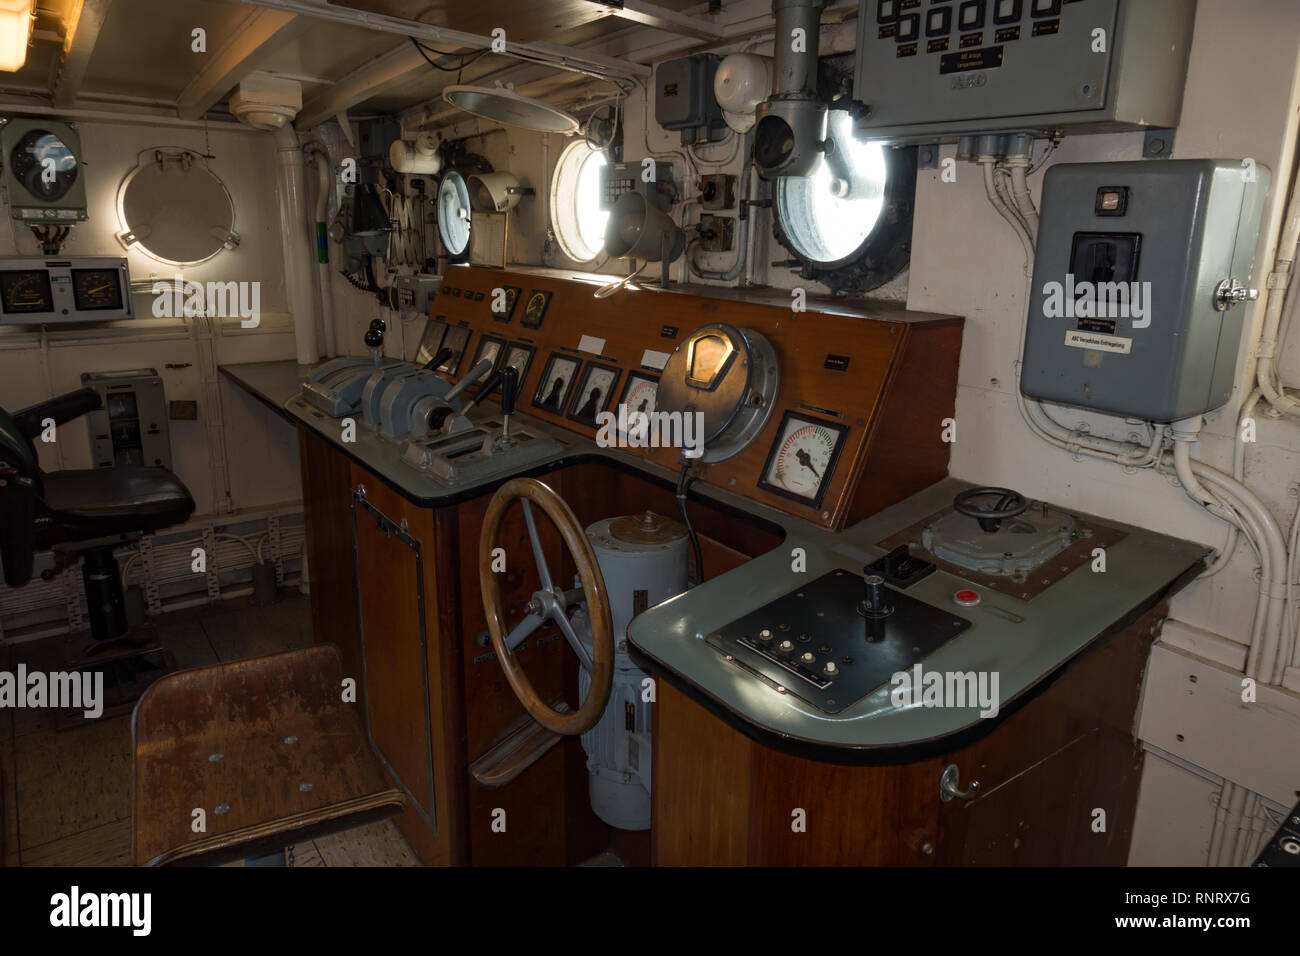 Wheel house of small German Navy vessel in Museum. Wilhelmshaven. Lower Saxony. Germany - Stock Image